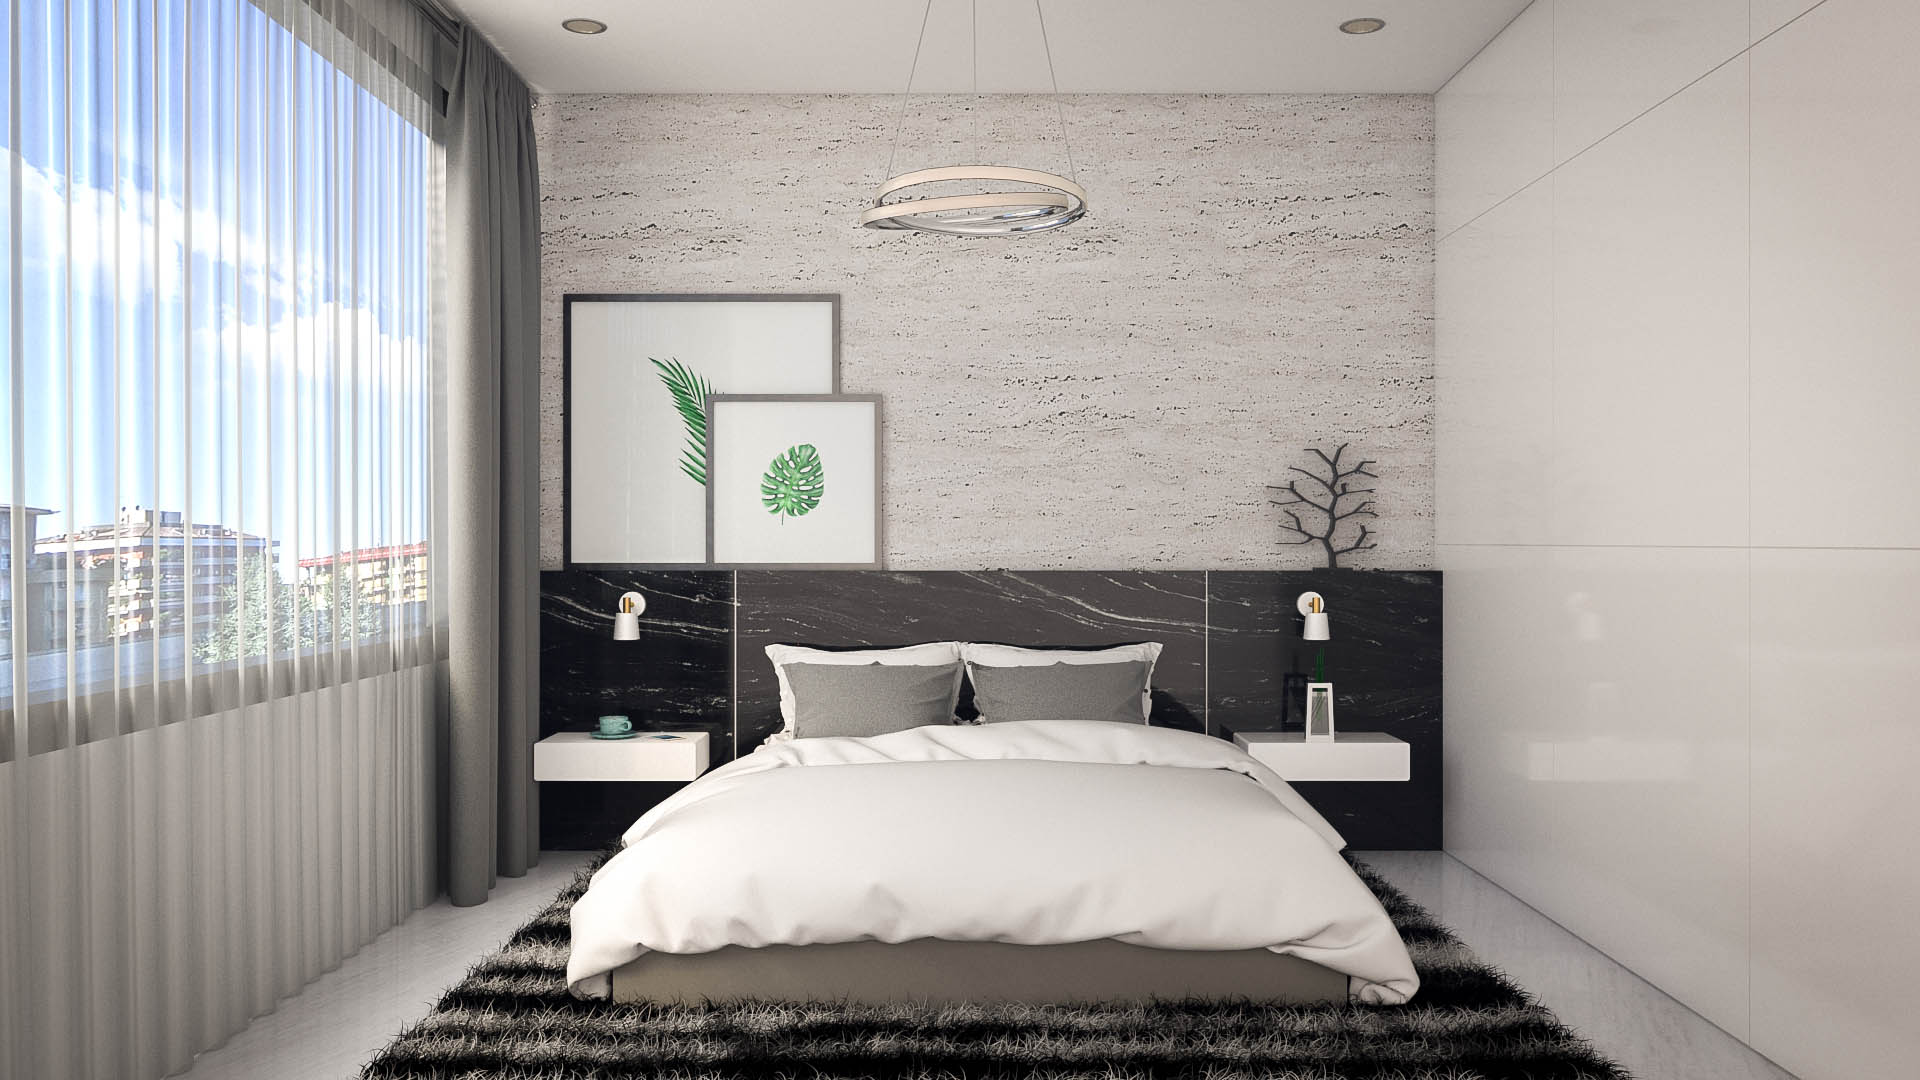 Small Modern Bedroom Design Ideas - roomdsign.com